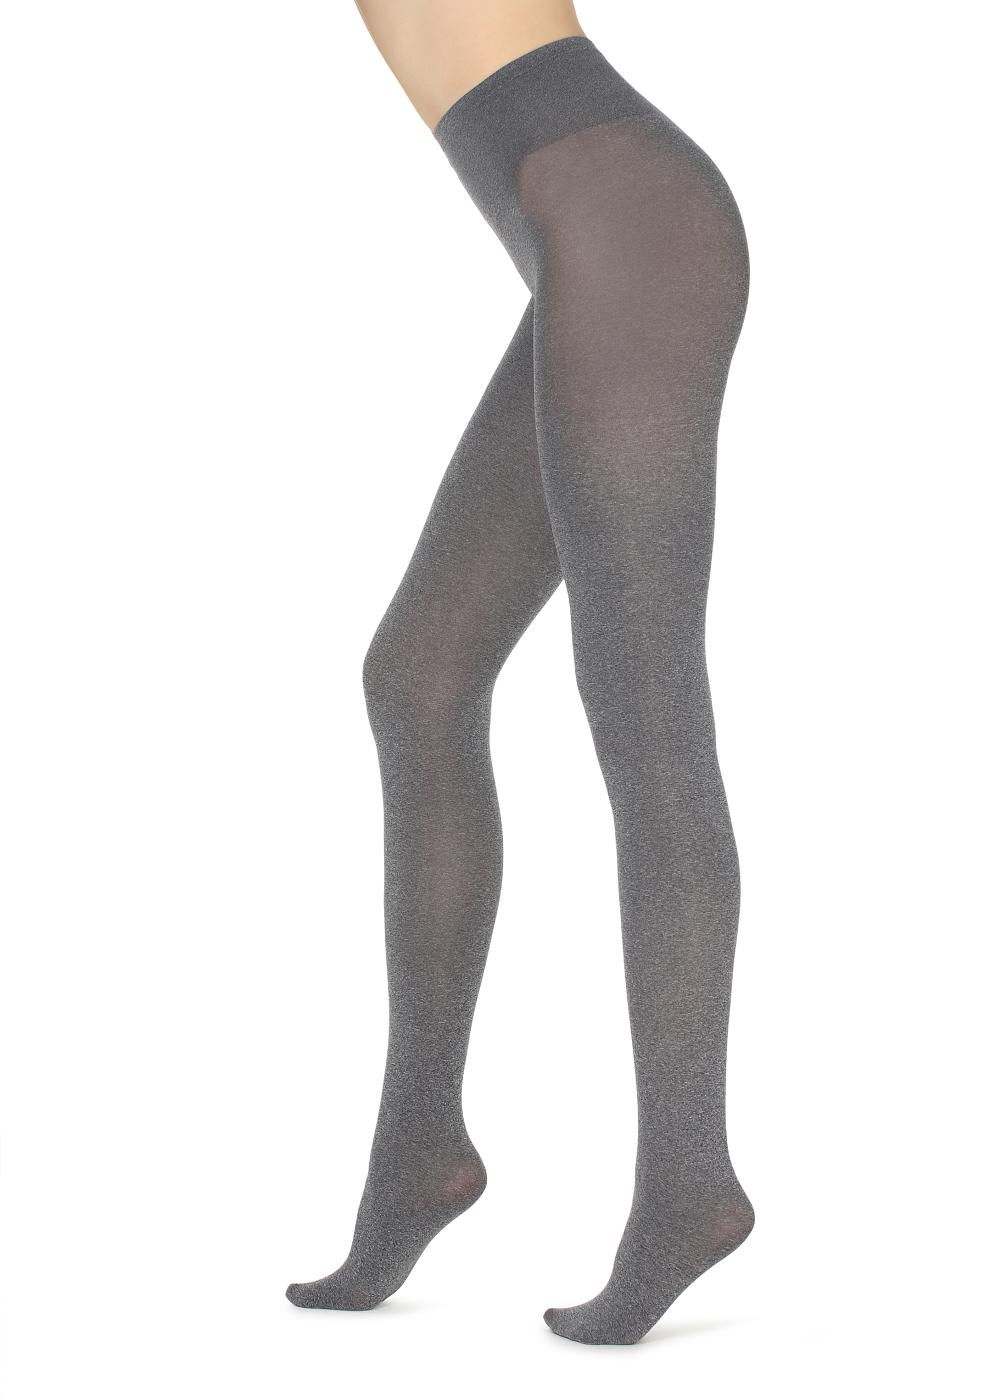 50 Denier Soft Touch Microfibre Opaque Tights